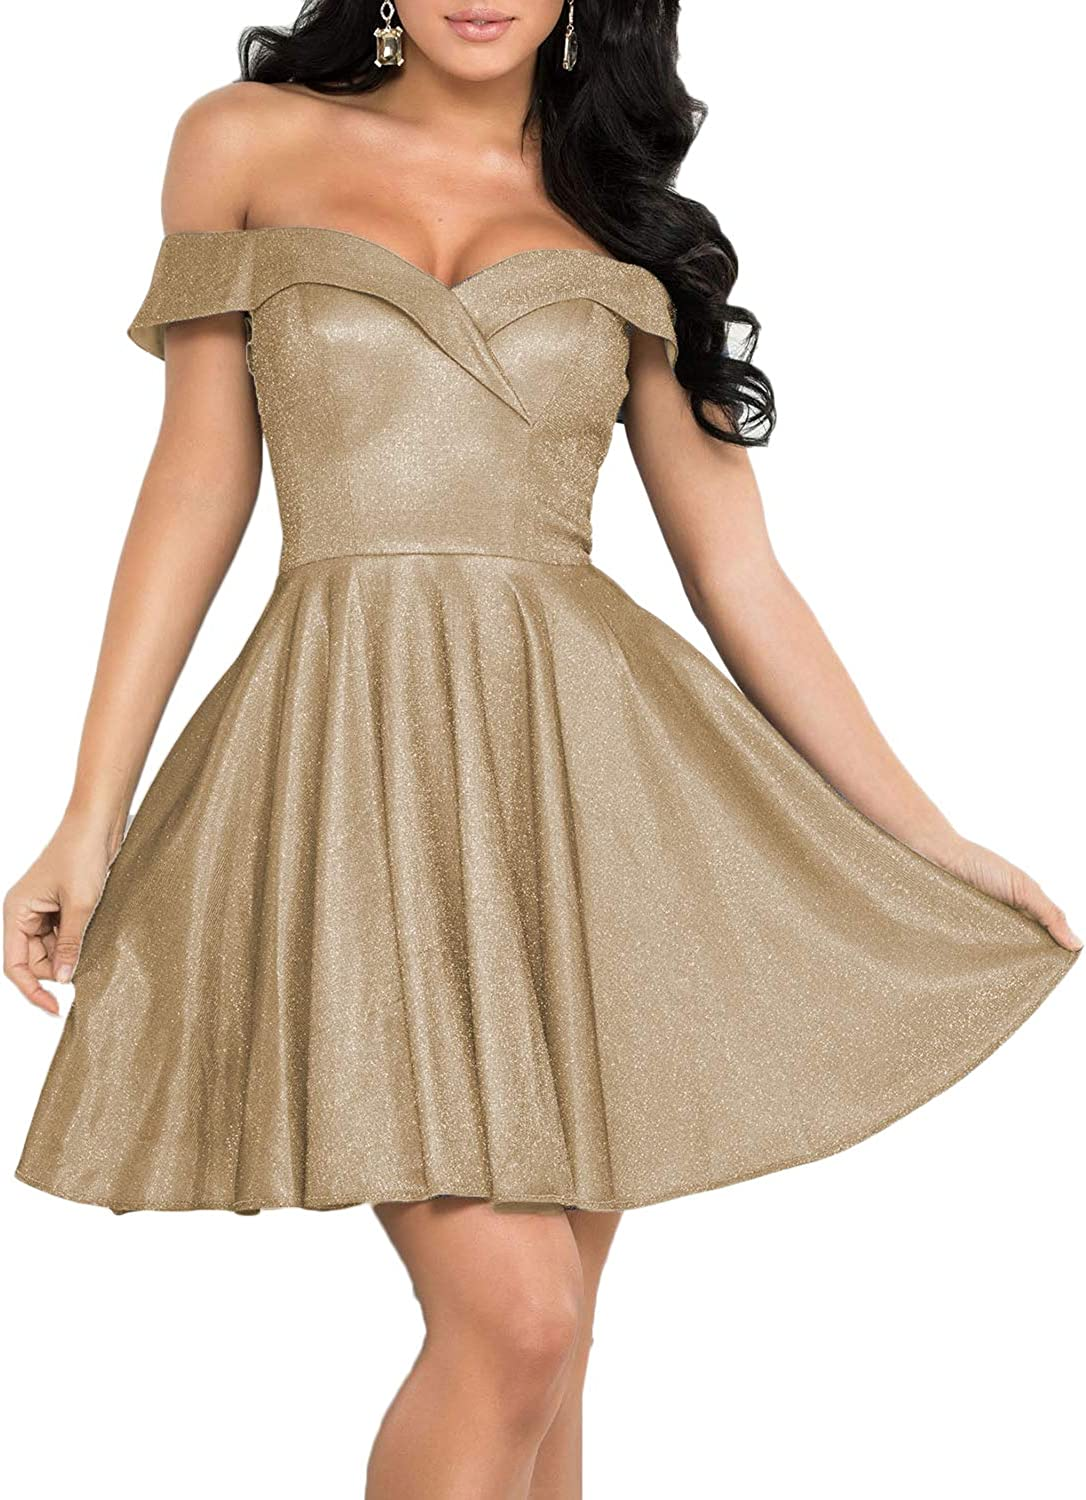 RYANTH Women's Max 57% OFF Off Shoulder Milwaukee Mall Homecoming Dresses Shor Pockets with